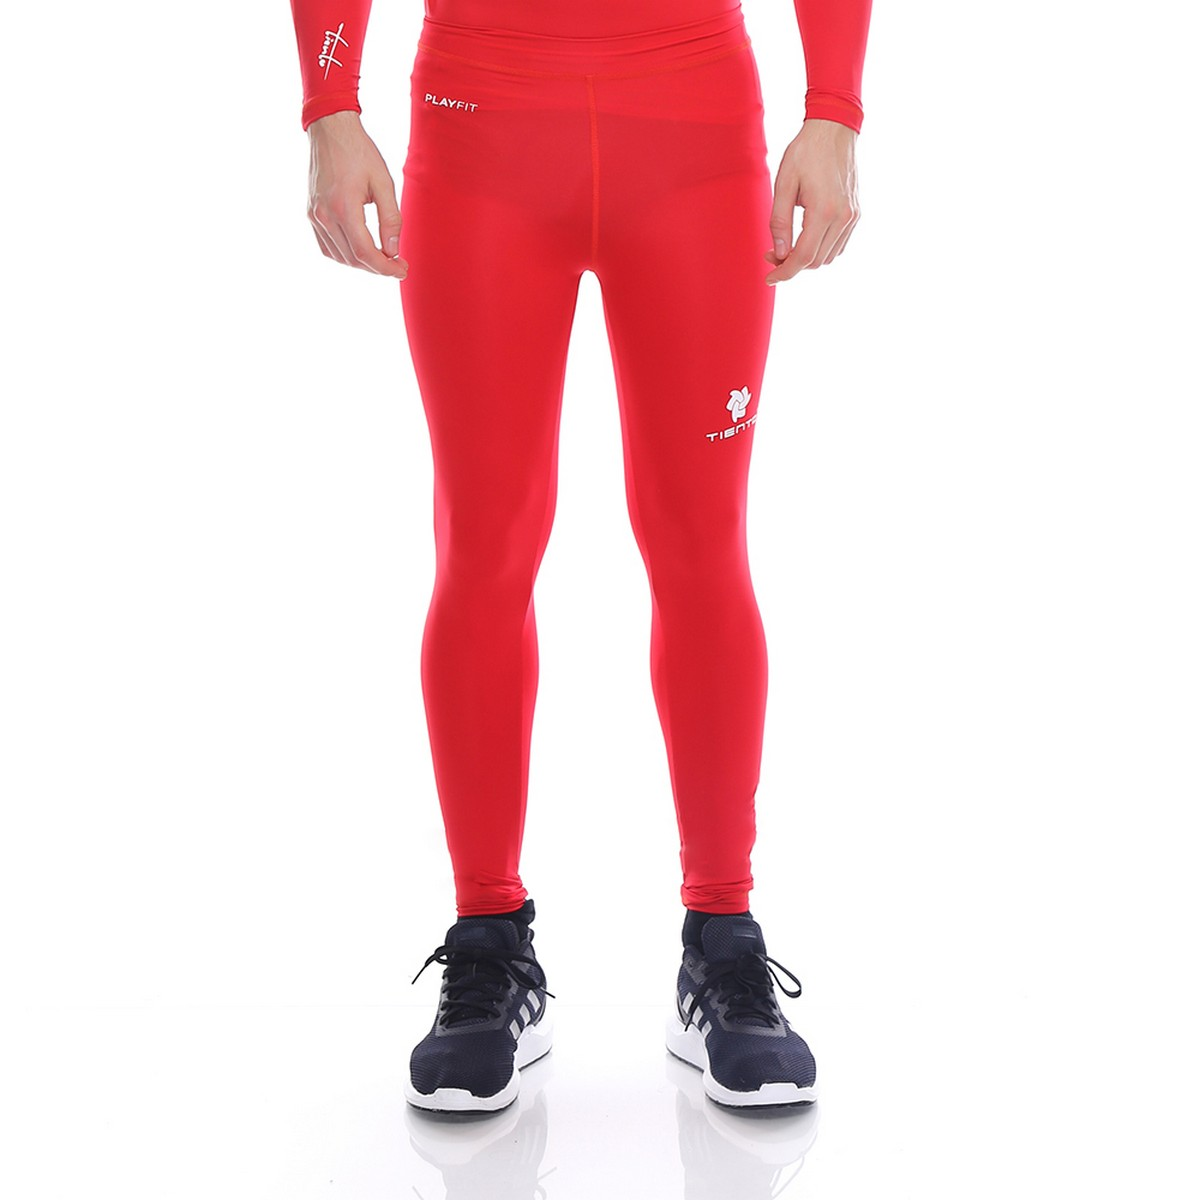 Celana Legging Sport Long Pants Red Men Tiento